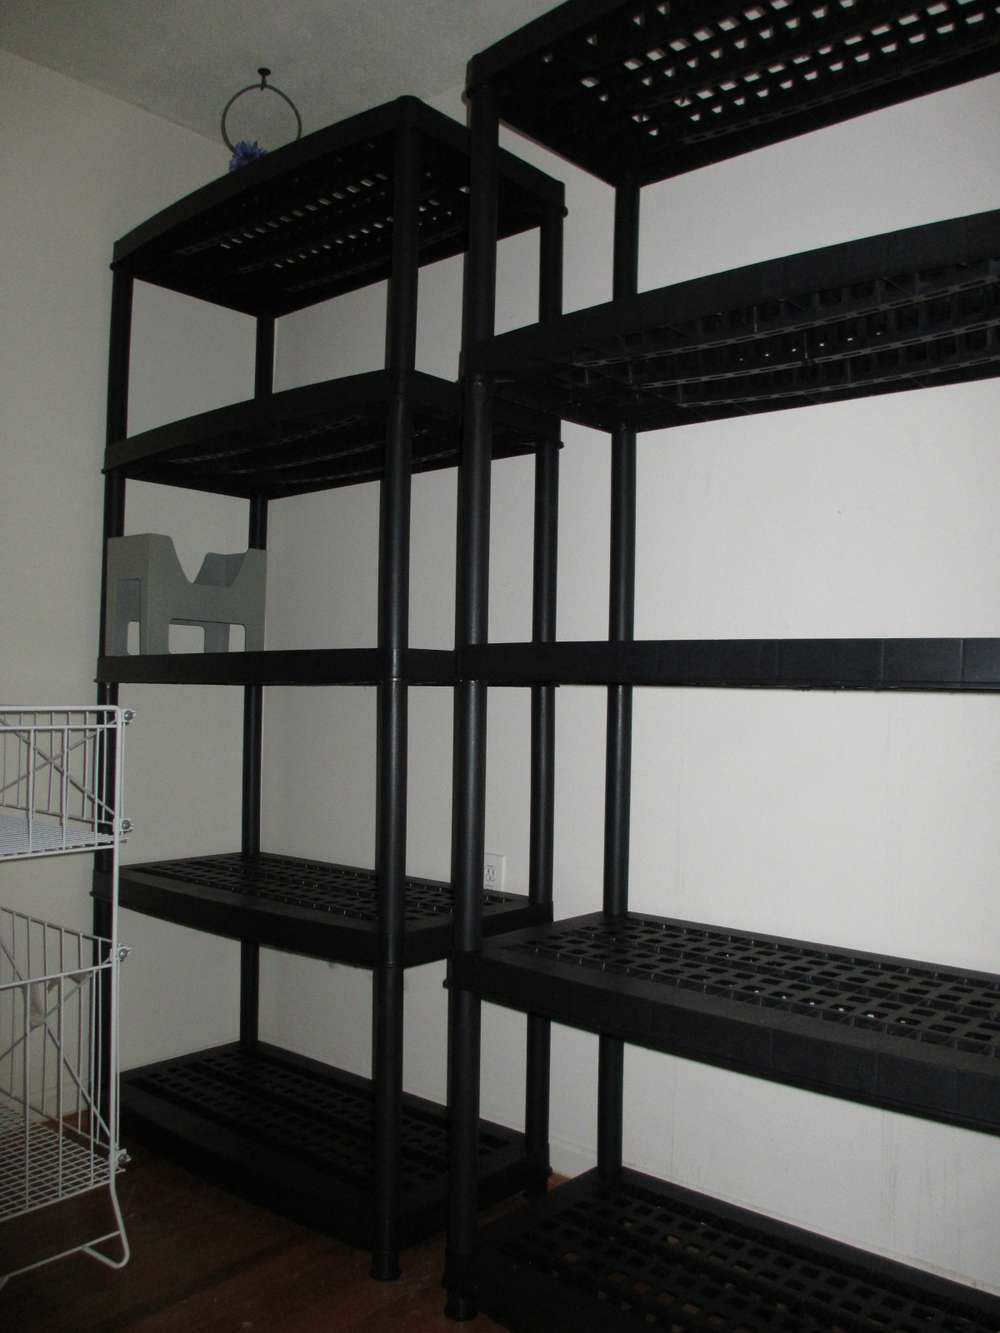 costco shelving units great deal on resin shelving units costco on ymmv 14113